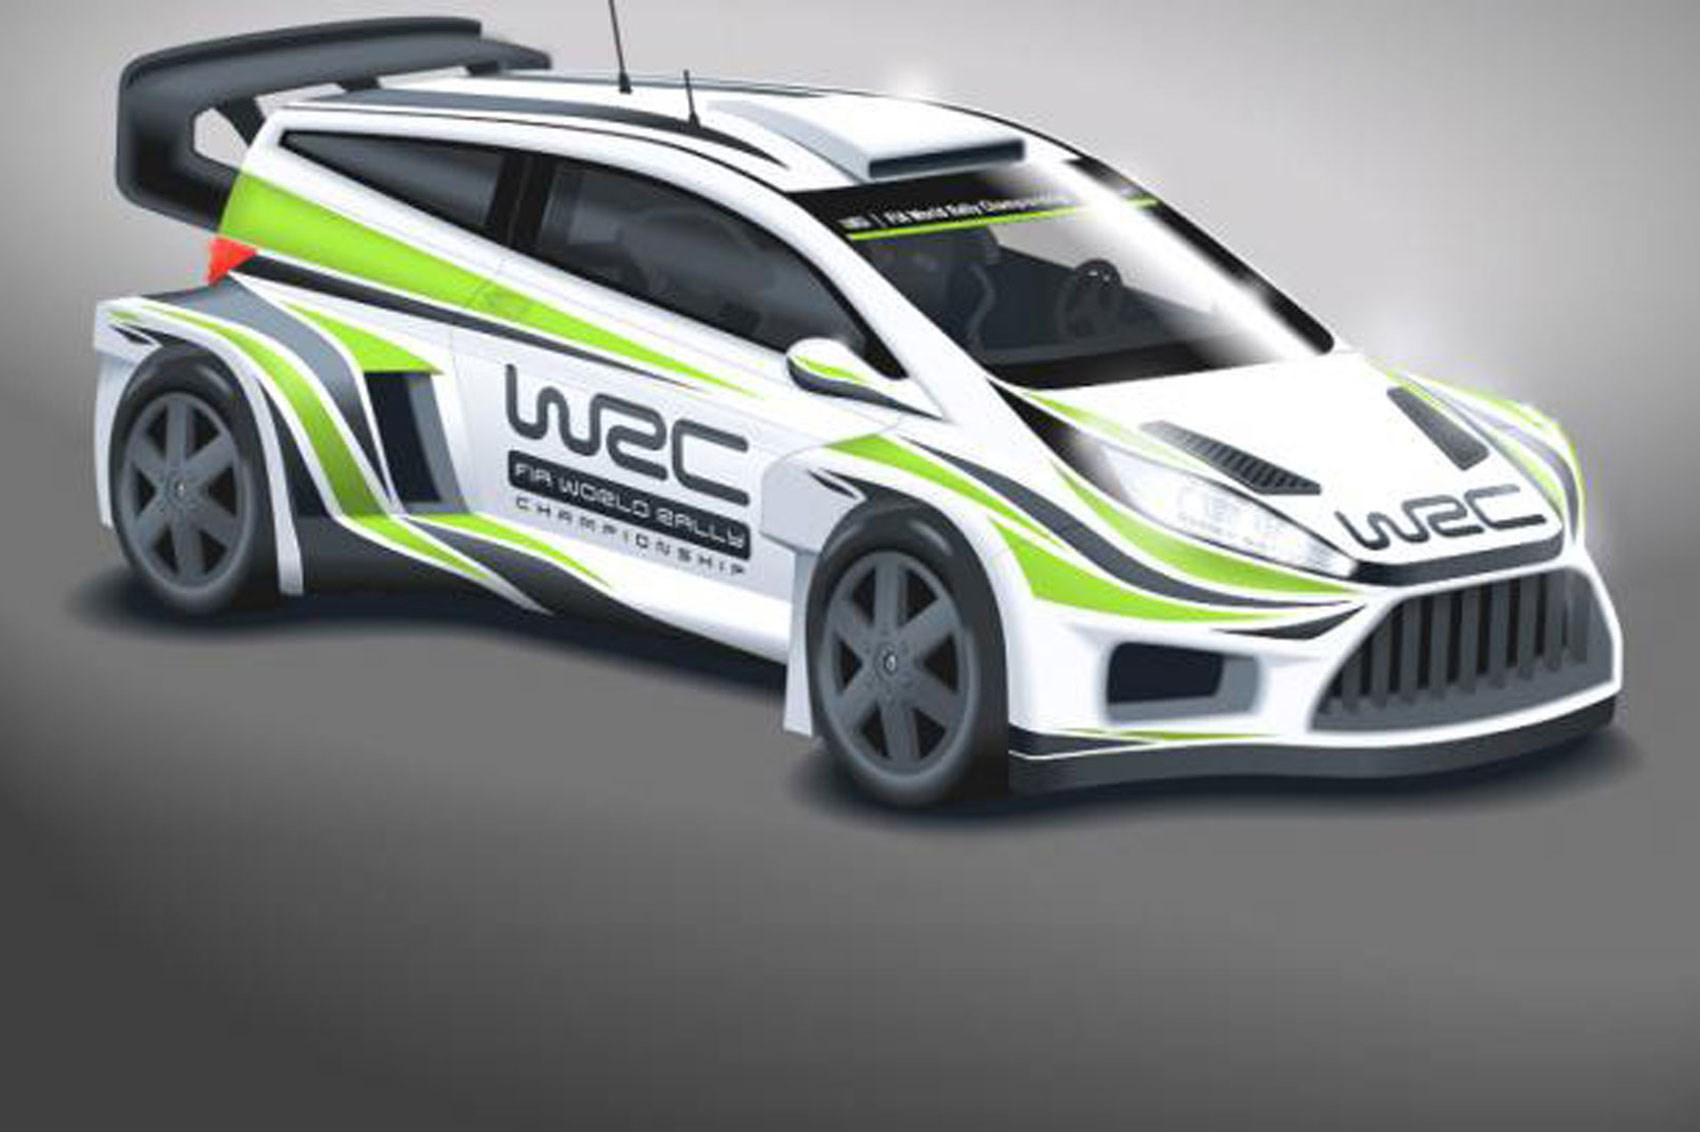 Ultrablogus  Seductive Wild New Look For Wrc Cars In  By Car Magazine With Heavenly Wrc Cars Will Get Wider Bodies Bigger Wings And More Power For  With Charming Mercedes Benz S Class  Interior Also Asx Interior In Addition Bmw Interior Pics And Interior Of I As Well As Lamborghini Suv Interior Additionally G Class Interior From Carmagazinecouk With Ultrablogus  Heavenly Wild New Look For Wrc Cars In  By Car Magazine With Charming Wrc Cars Will Get Wider Bodies Bigger Wings And More Power For  And Seductive Mercedes Benz S Class  Interior Also Asx Interior In Addition Bmw Interior Pics From Carmagazinecouk